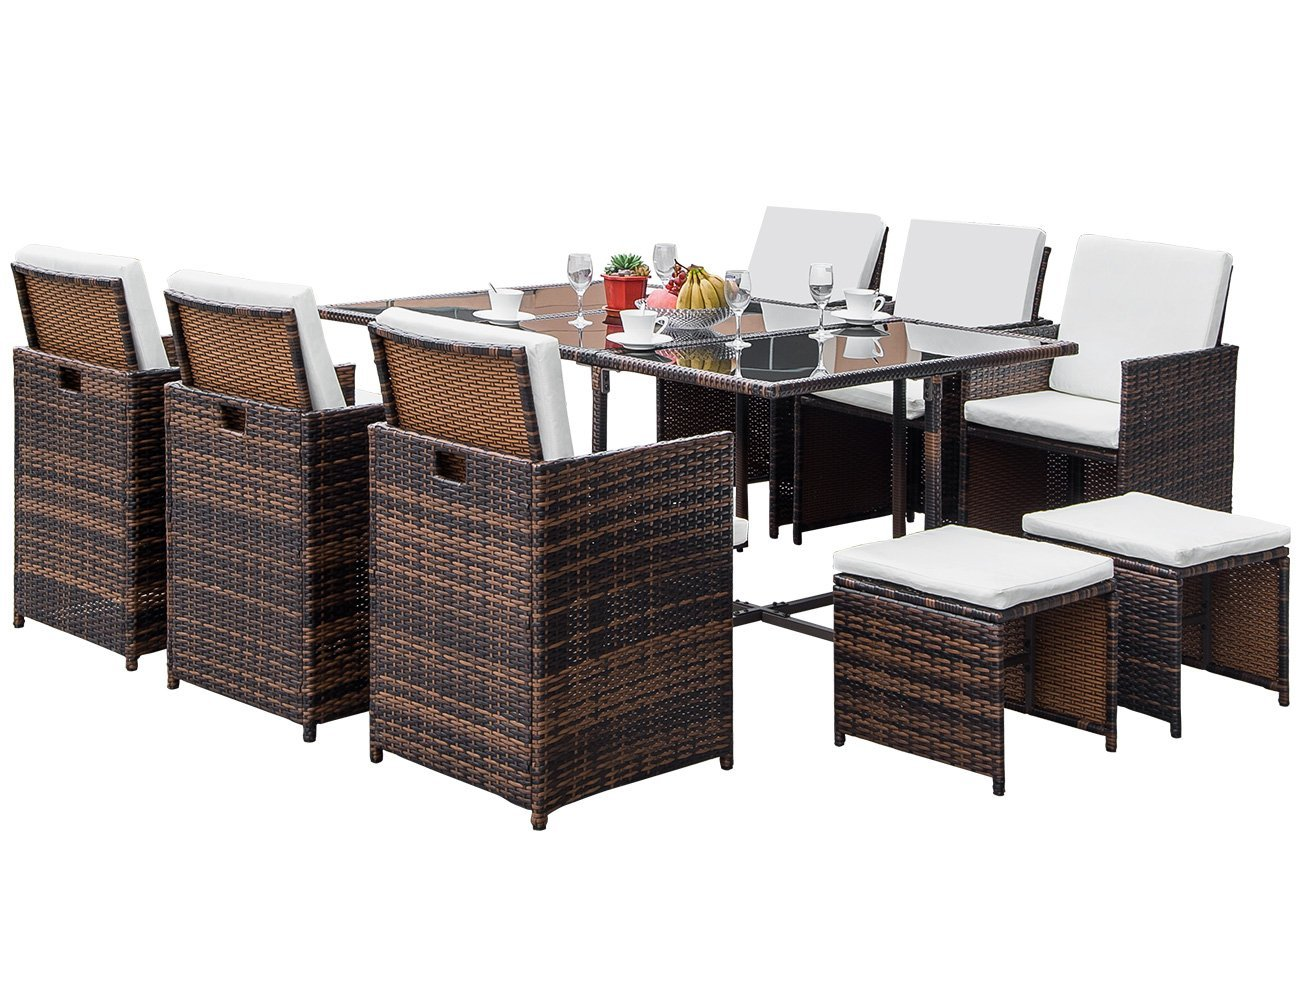 Stylish and Comfortable Patio Furniture on a Budget!